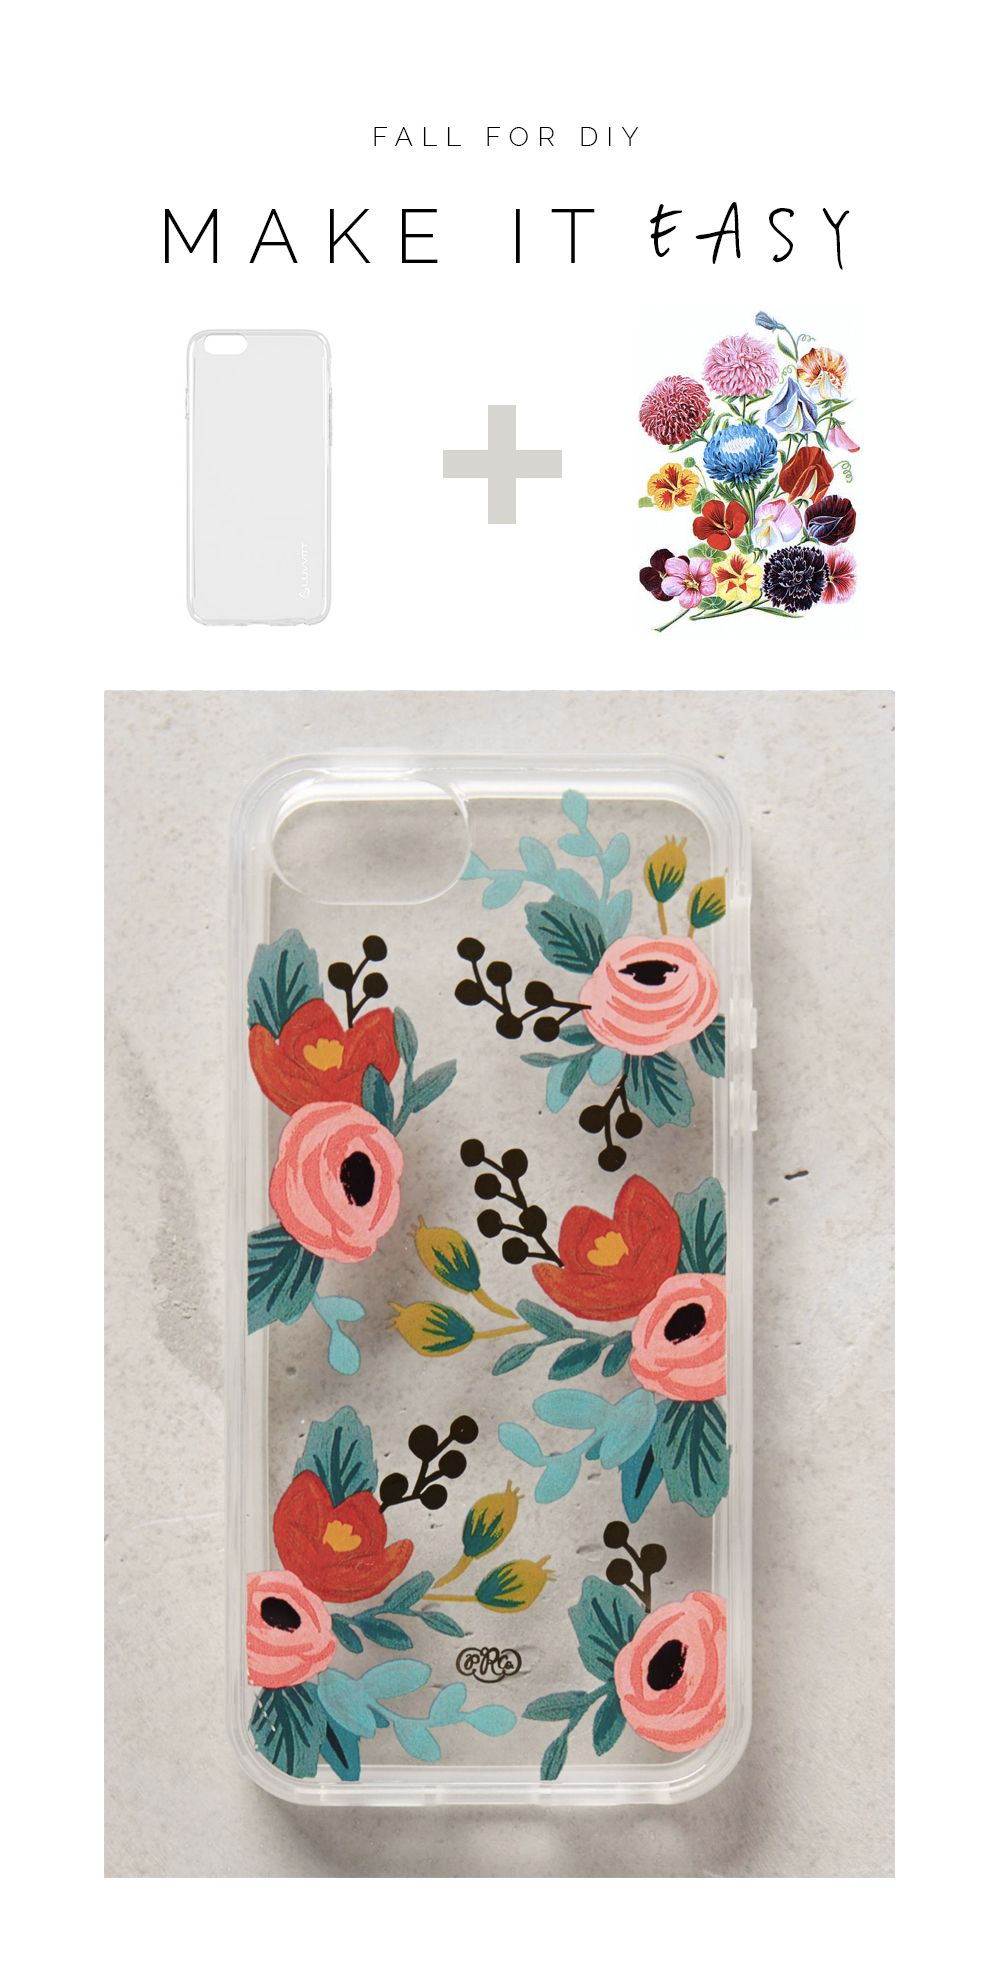 Cute And Simple Diy Blue Ombre Gradient Iphone Case Using Acrylic